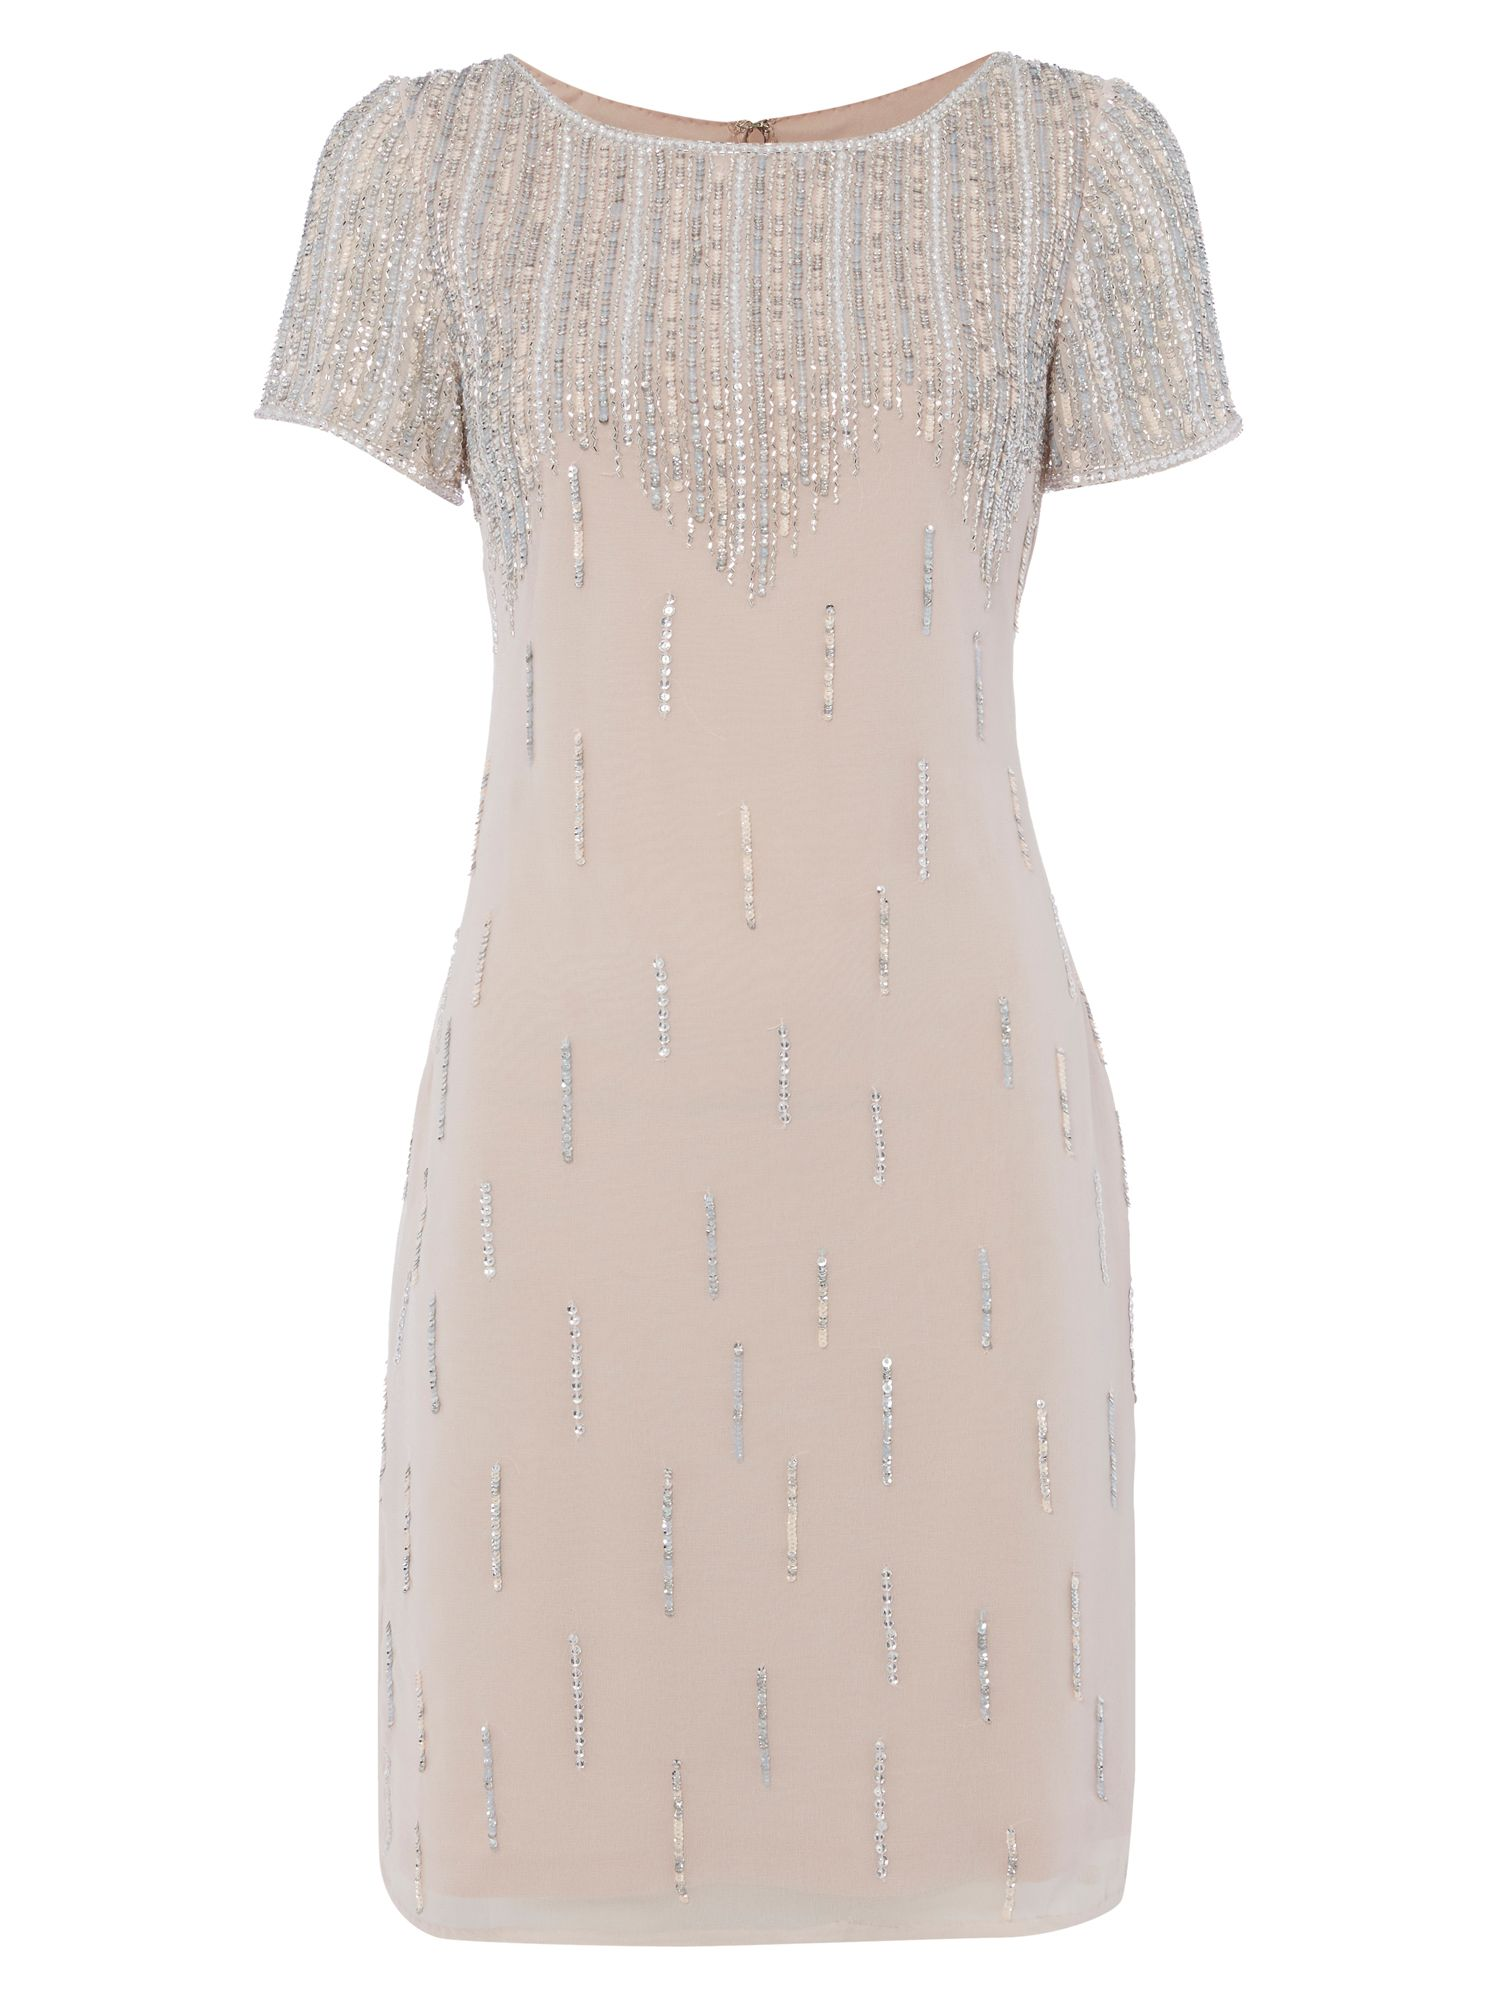 RAISHMA Zig-Zag Embellished Dress, Pastel Pink